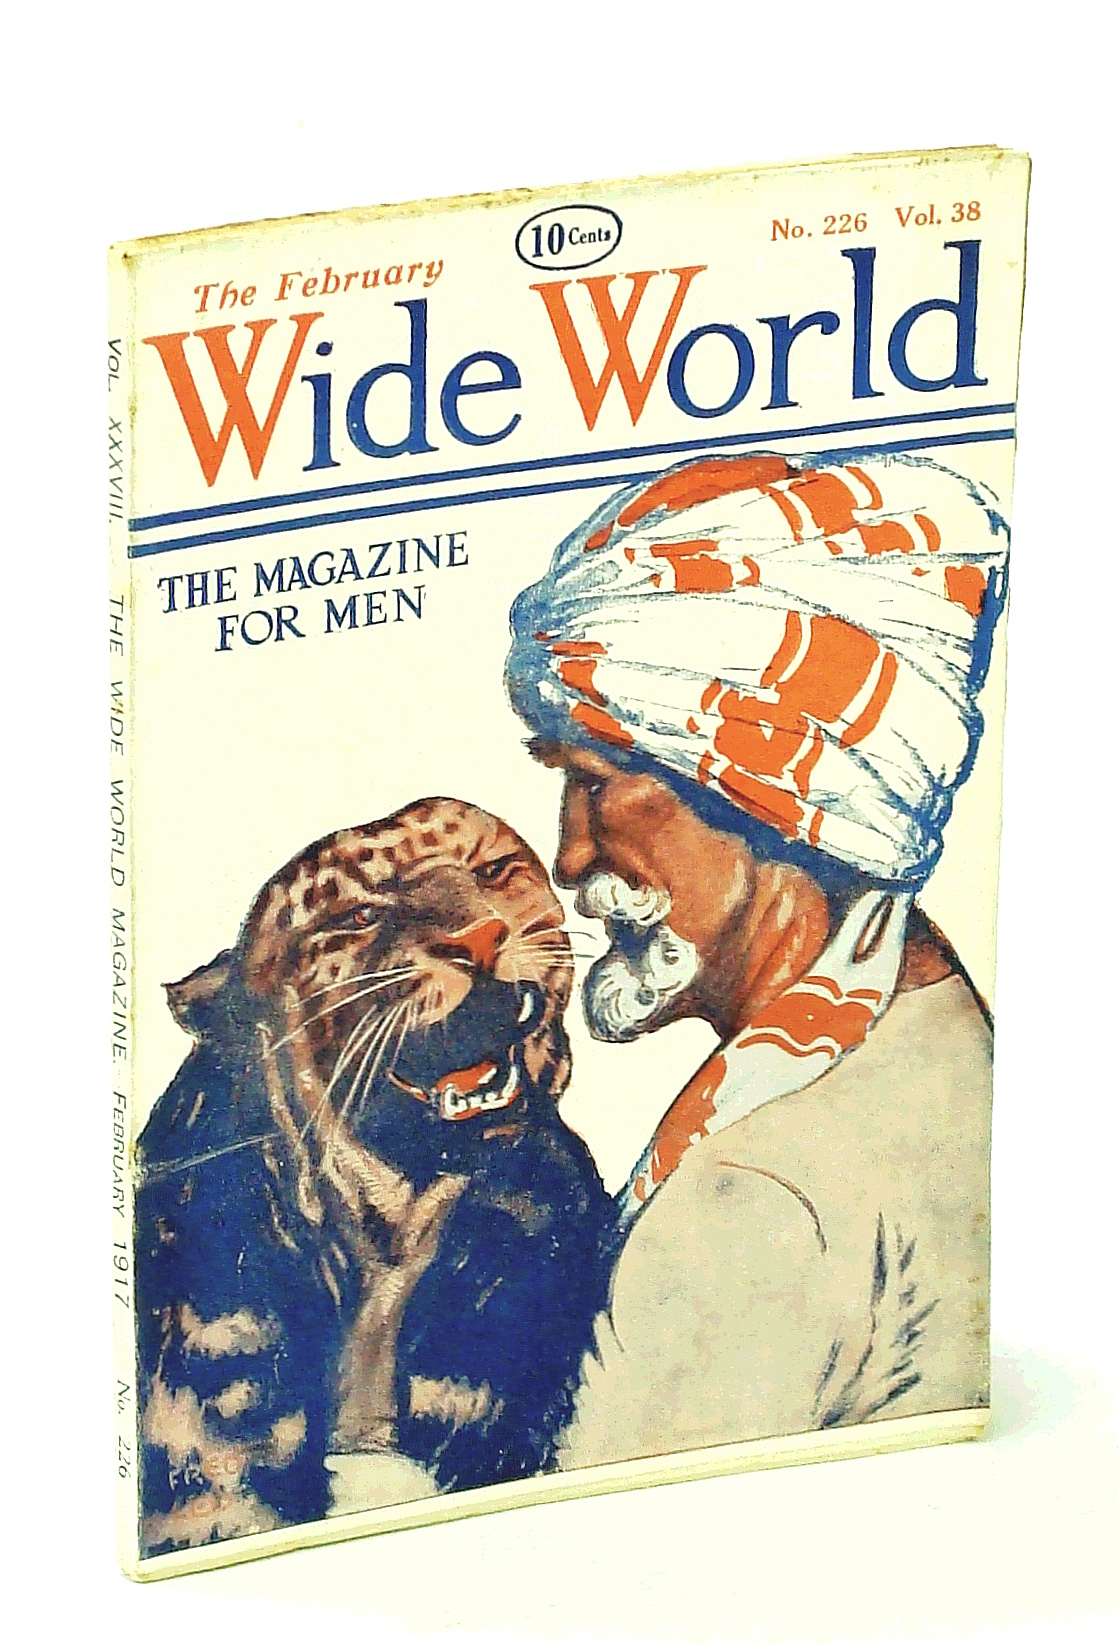 Image for The Wide World, The Magazine for Men, February [Feb.] 1917, Vol. 38, No. 226: Ivory Poaching in German East Africa